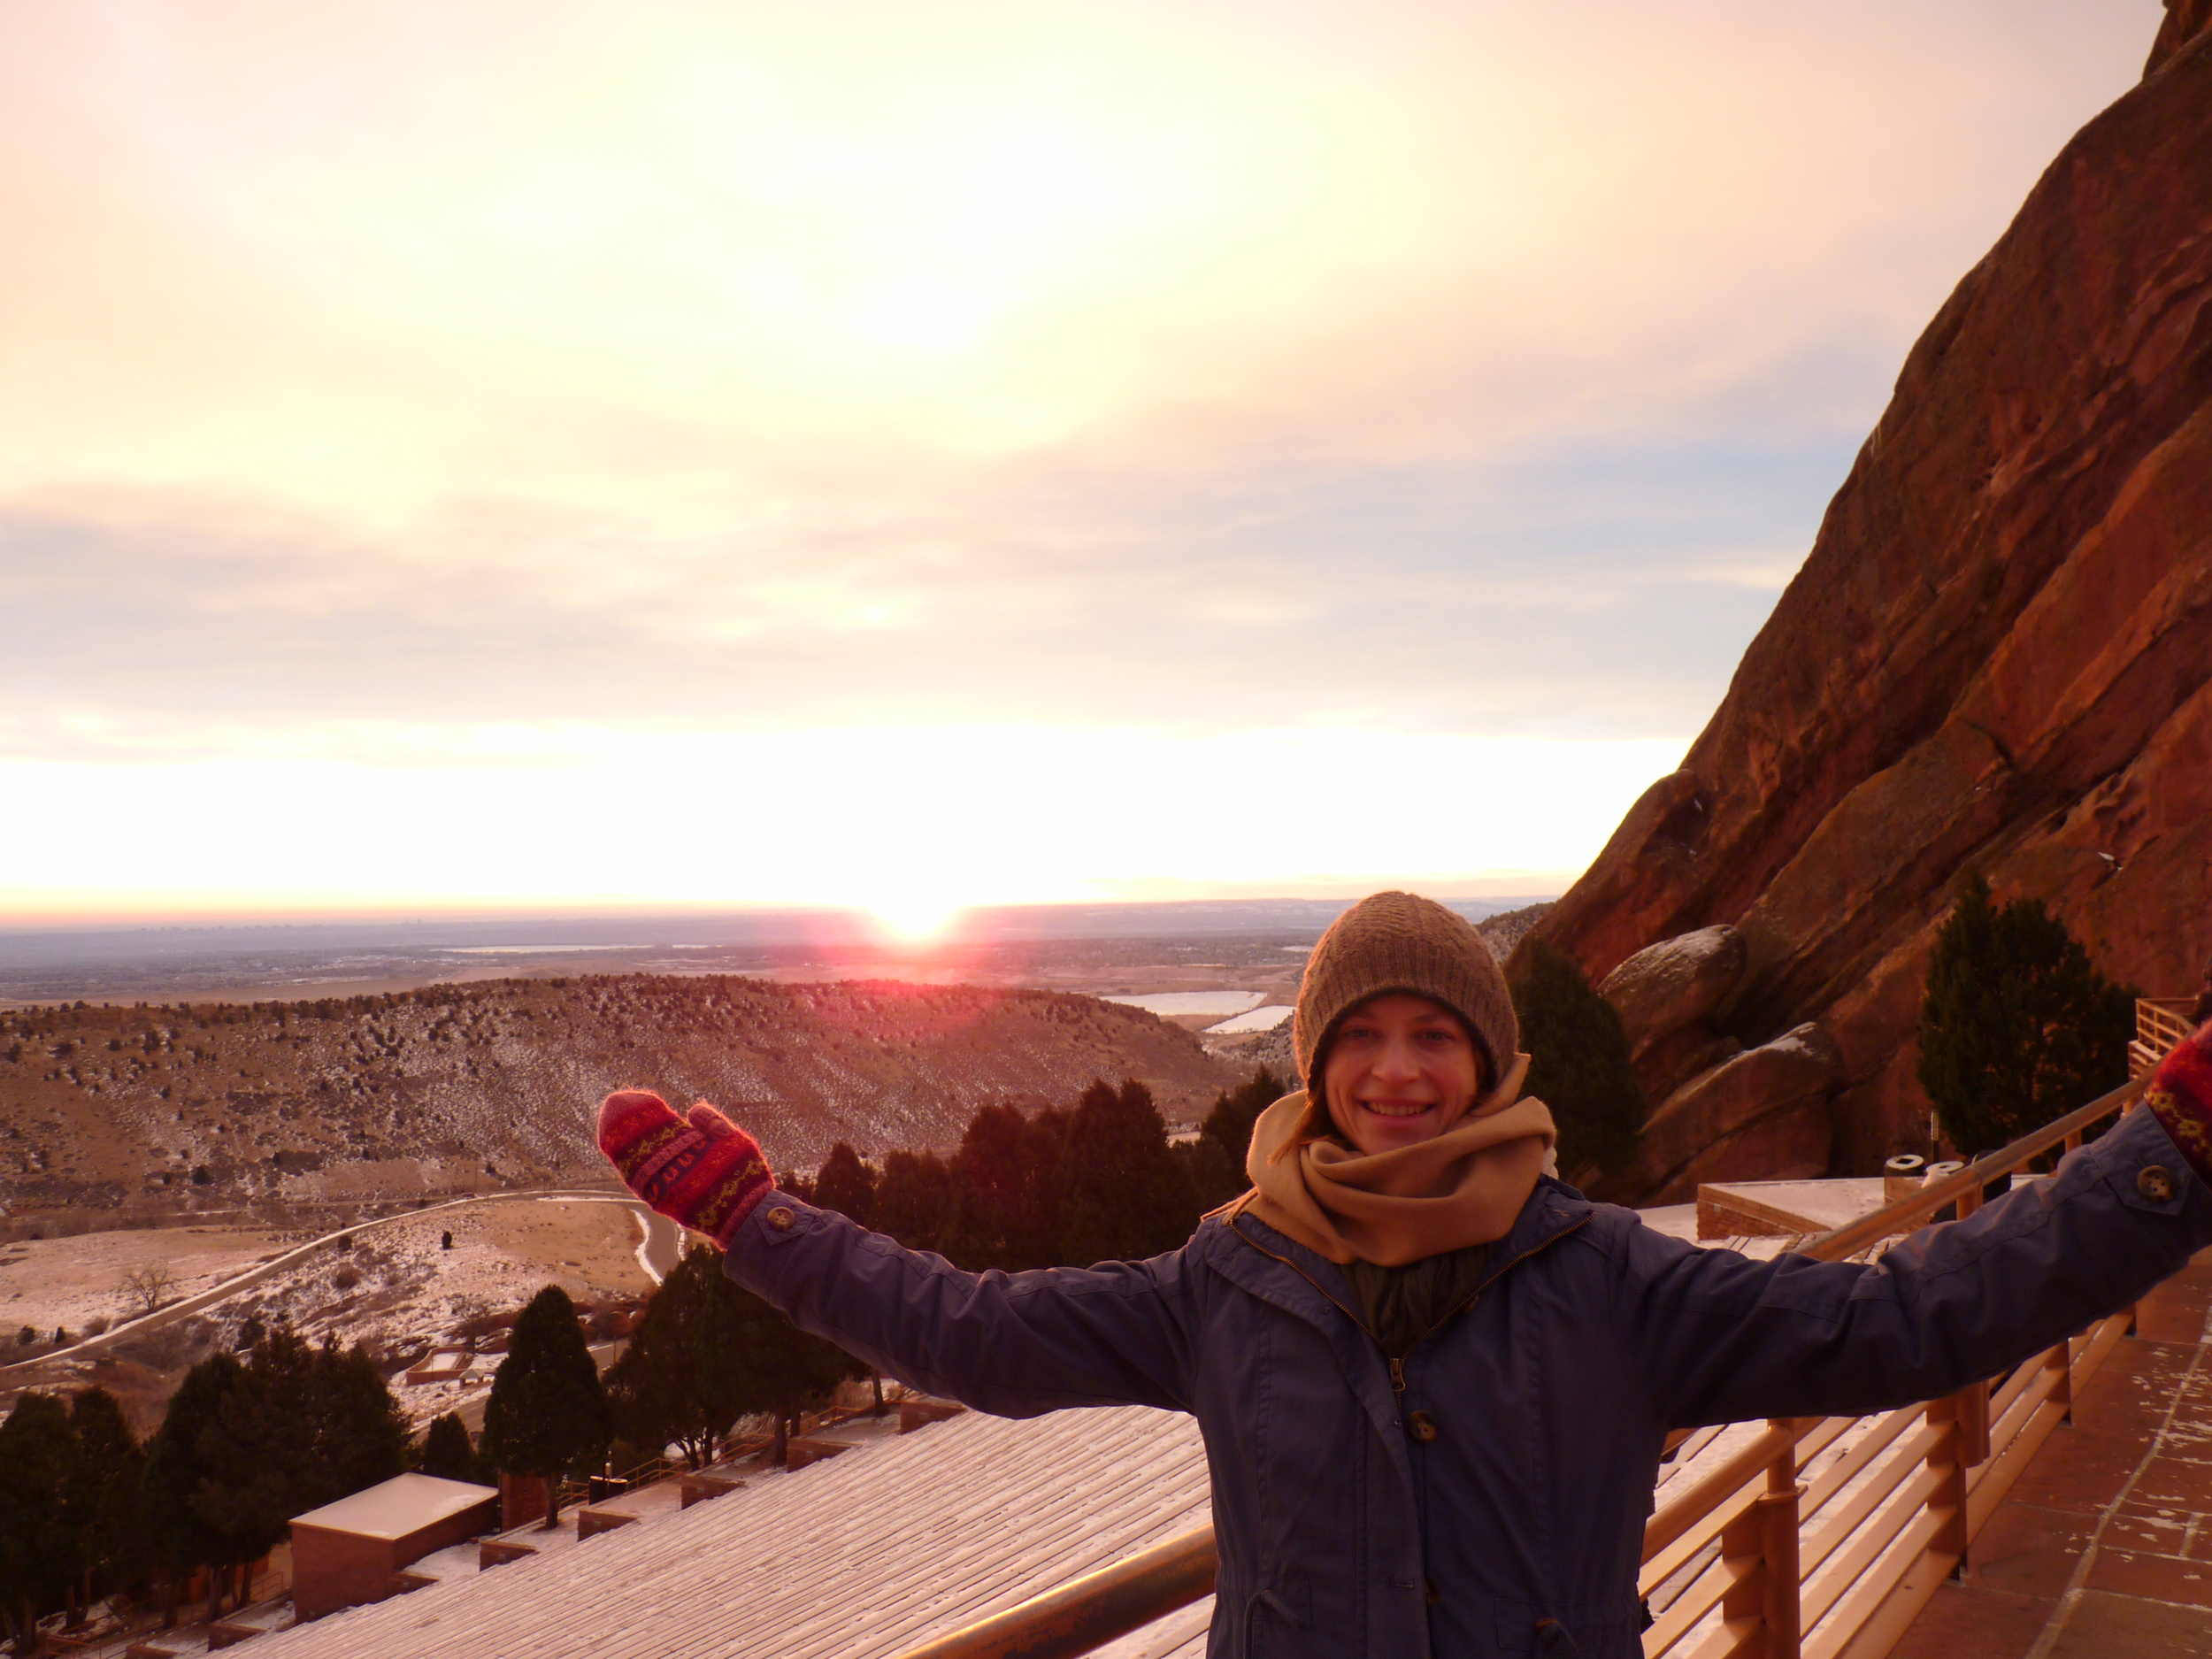 Sunrise on New Years day at Red Rocks